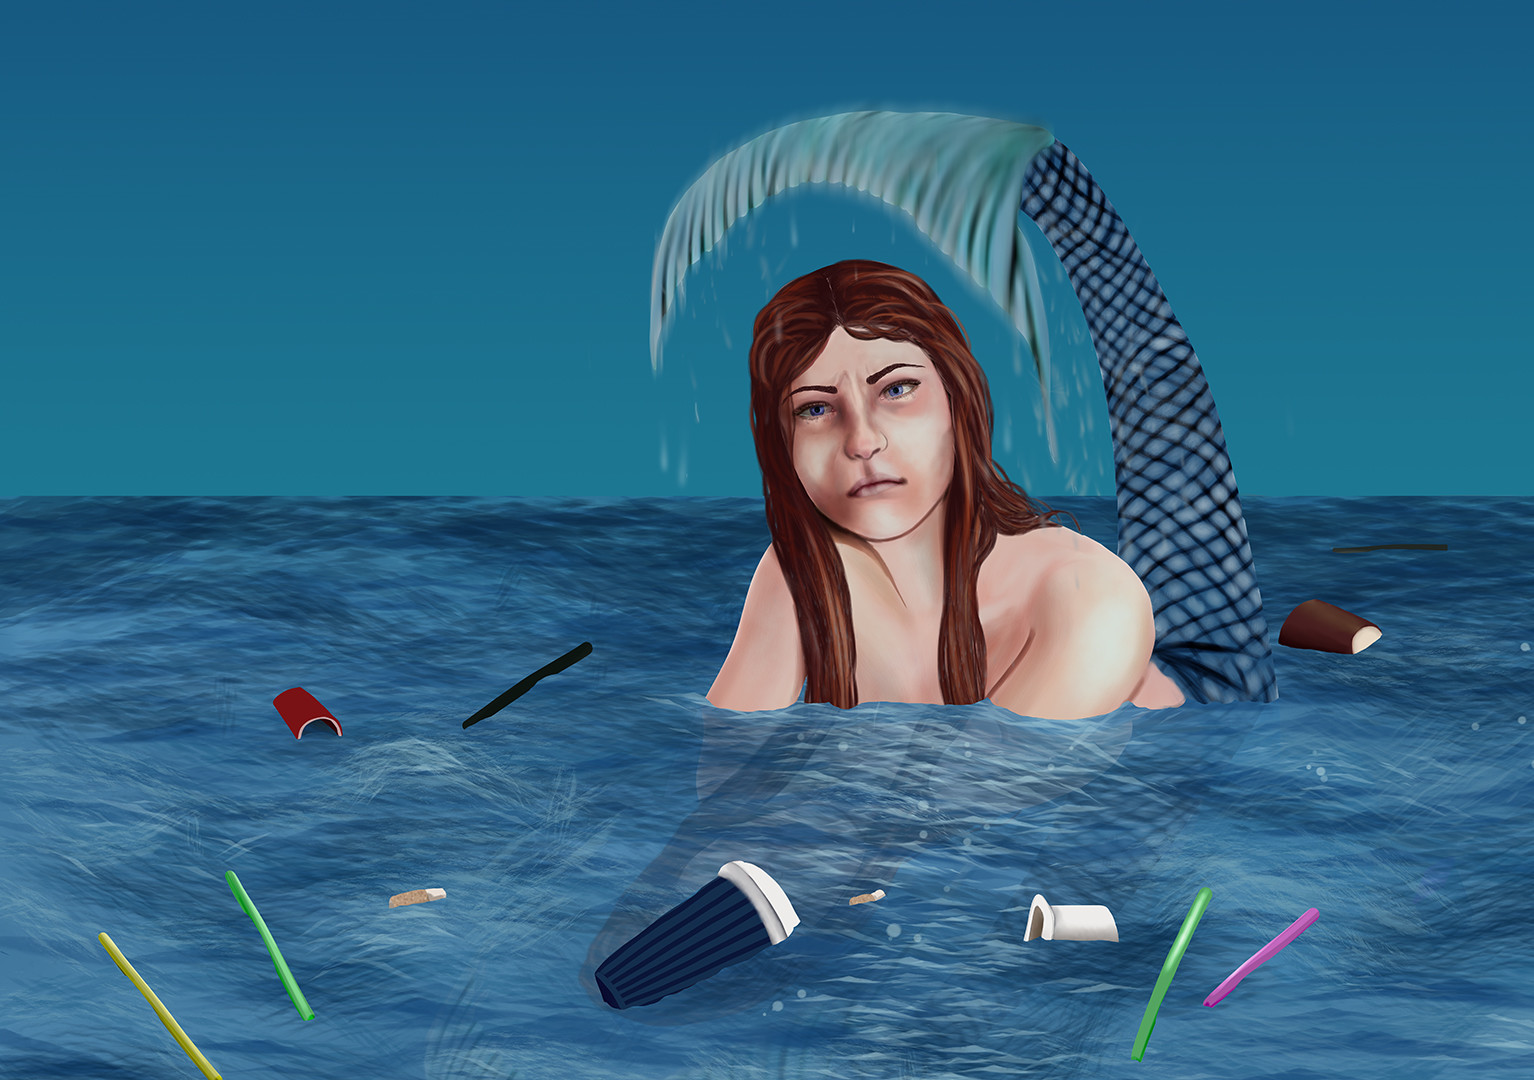 The Unhappy Mermaid